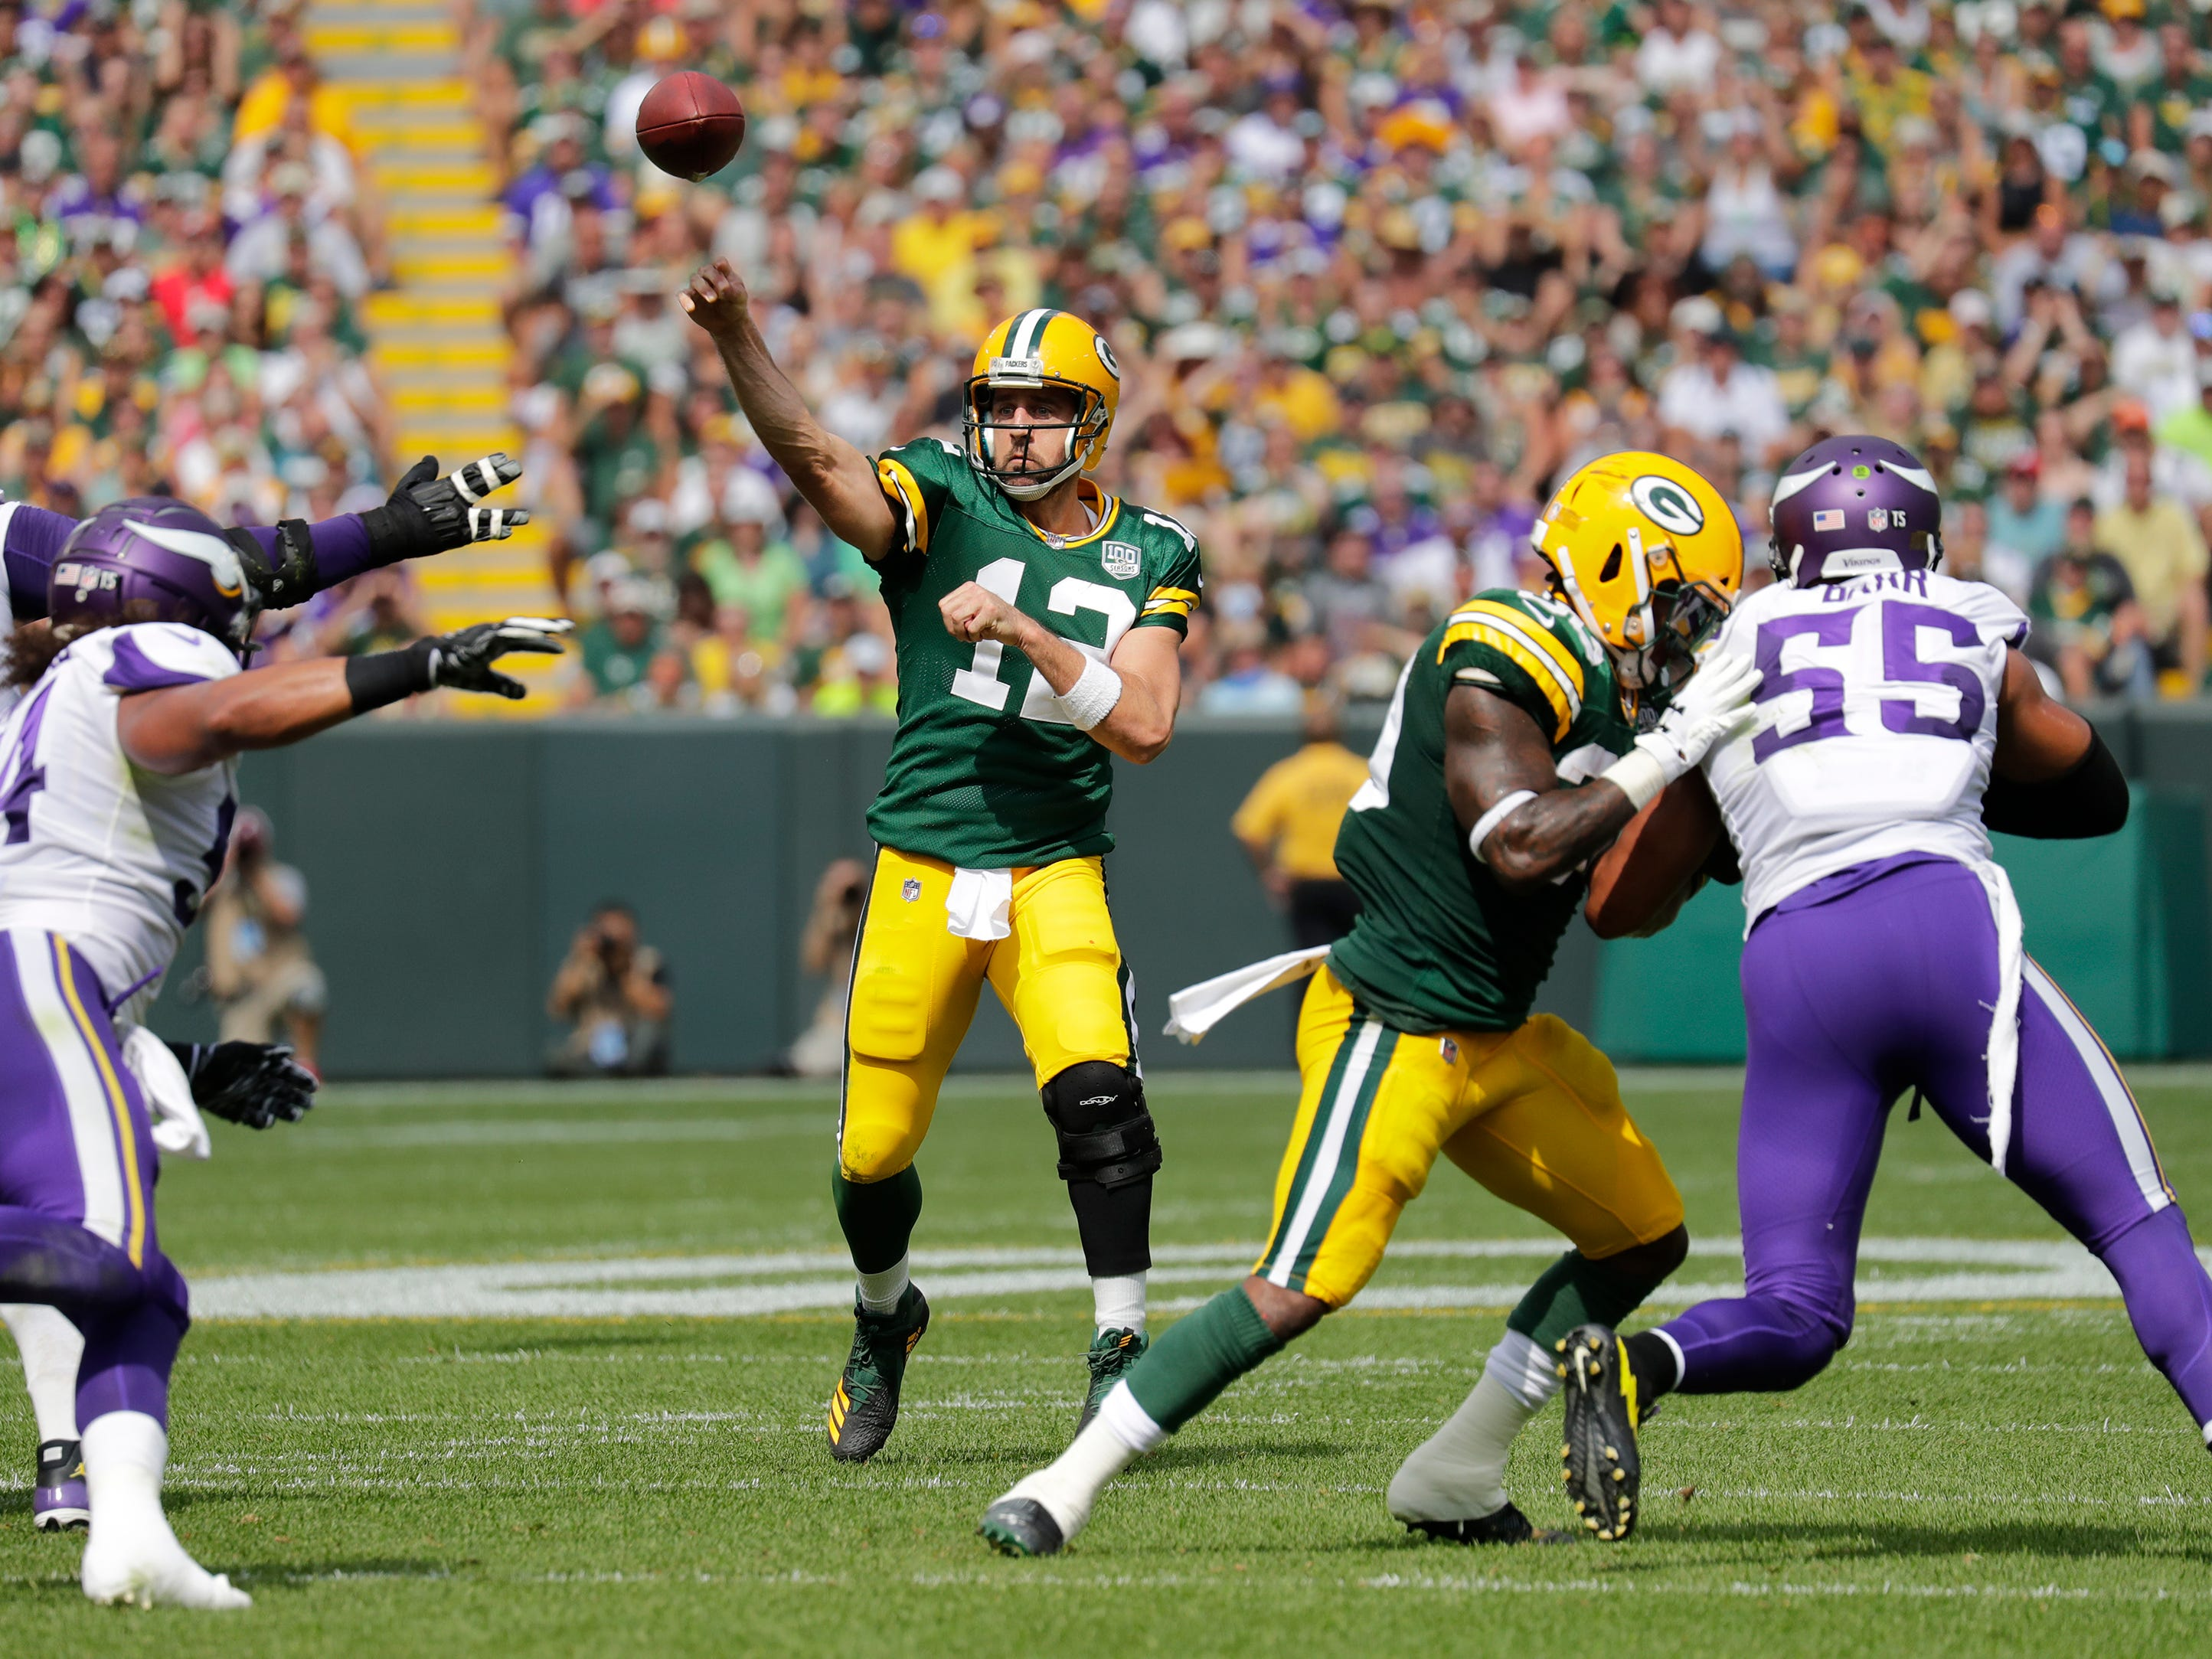 Green Bay Packers quarterback Aaron Rodgers (12) throws a touchdown pass to wide receiver Davante Adams (17) in the second quarter during their football game Sunday, Sept. 16, 2018, at Lambeau Field in Green Bay, Wis.